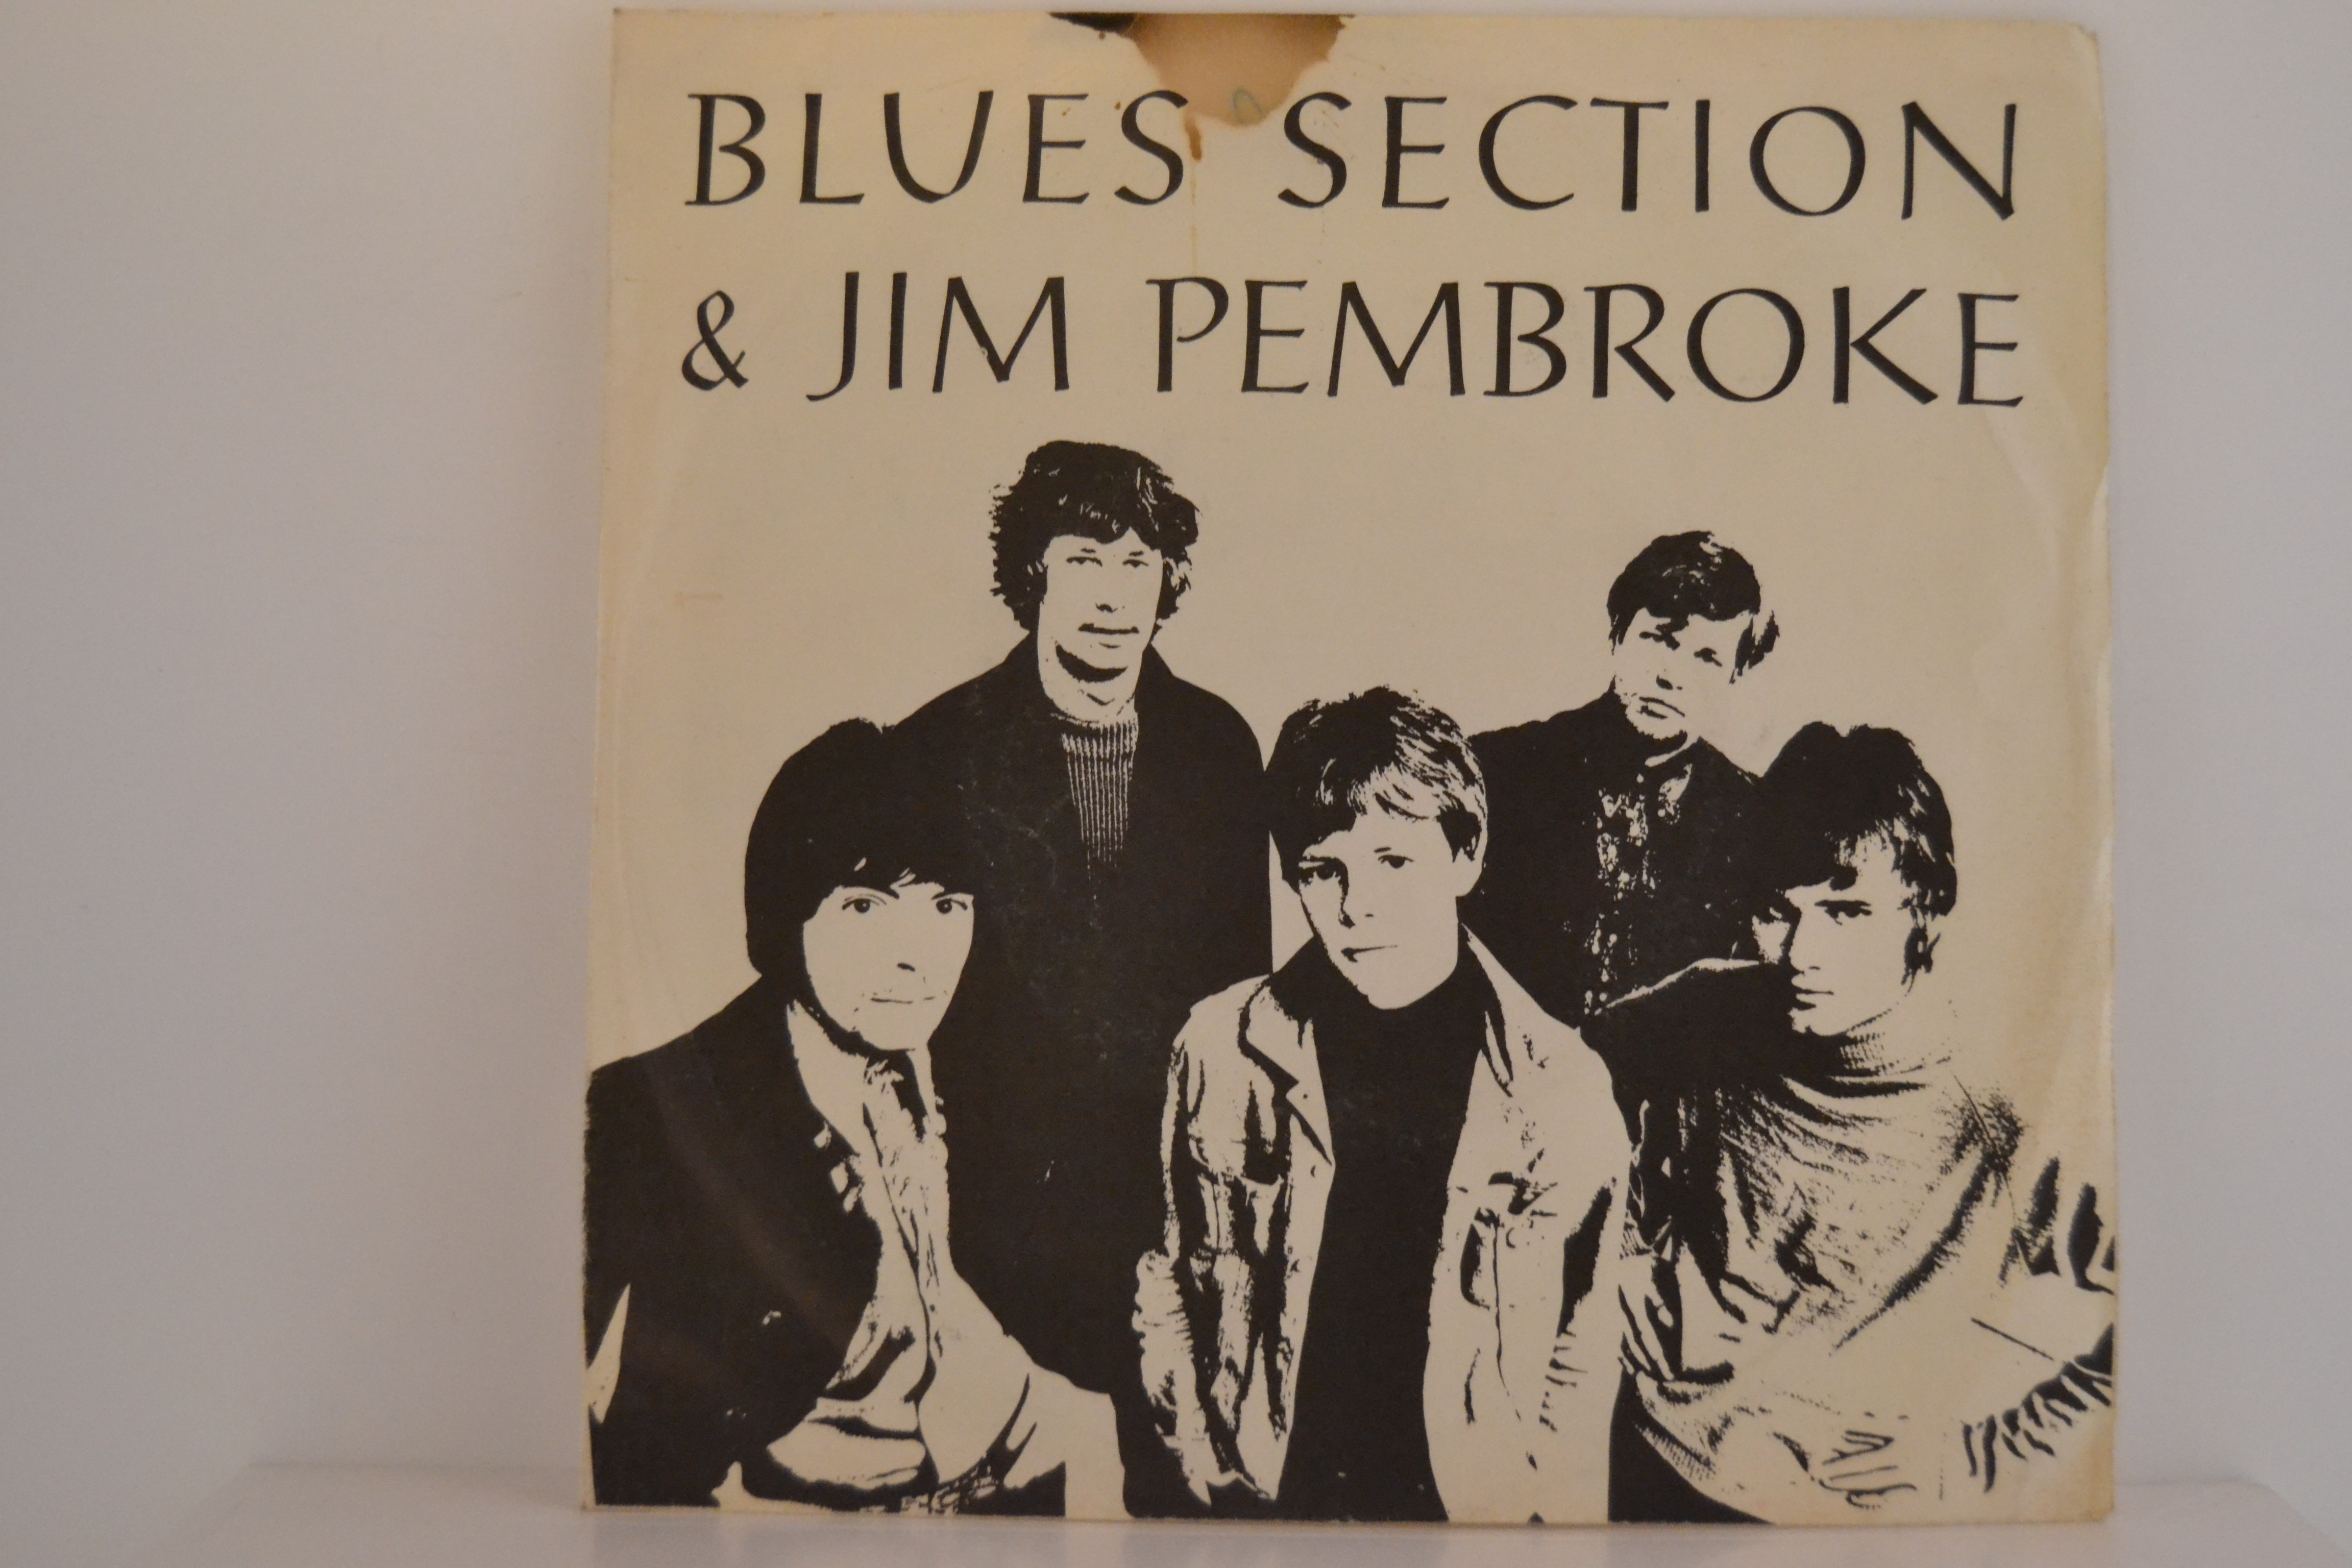 BLUES SECTION & JIM PEMBROKE (ex Jormas) : Call me on your telephone / Only dreaming